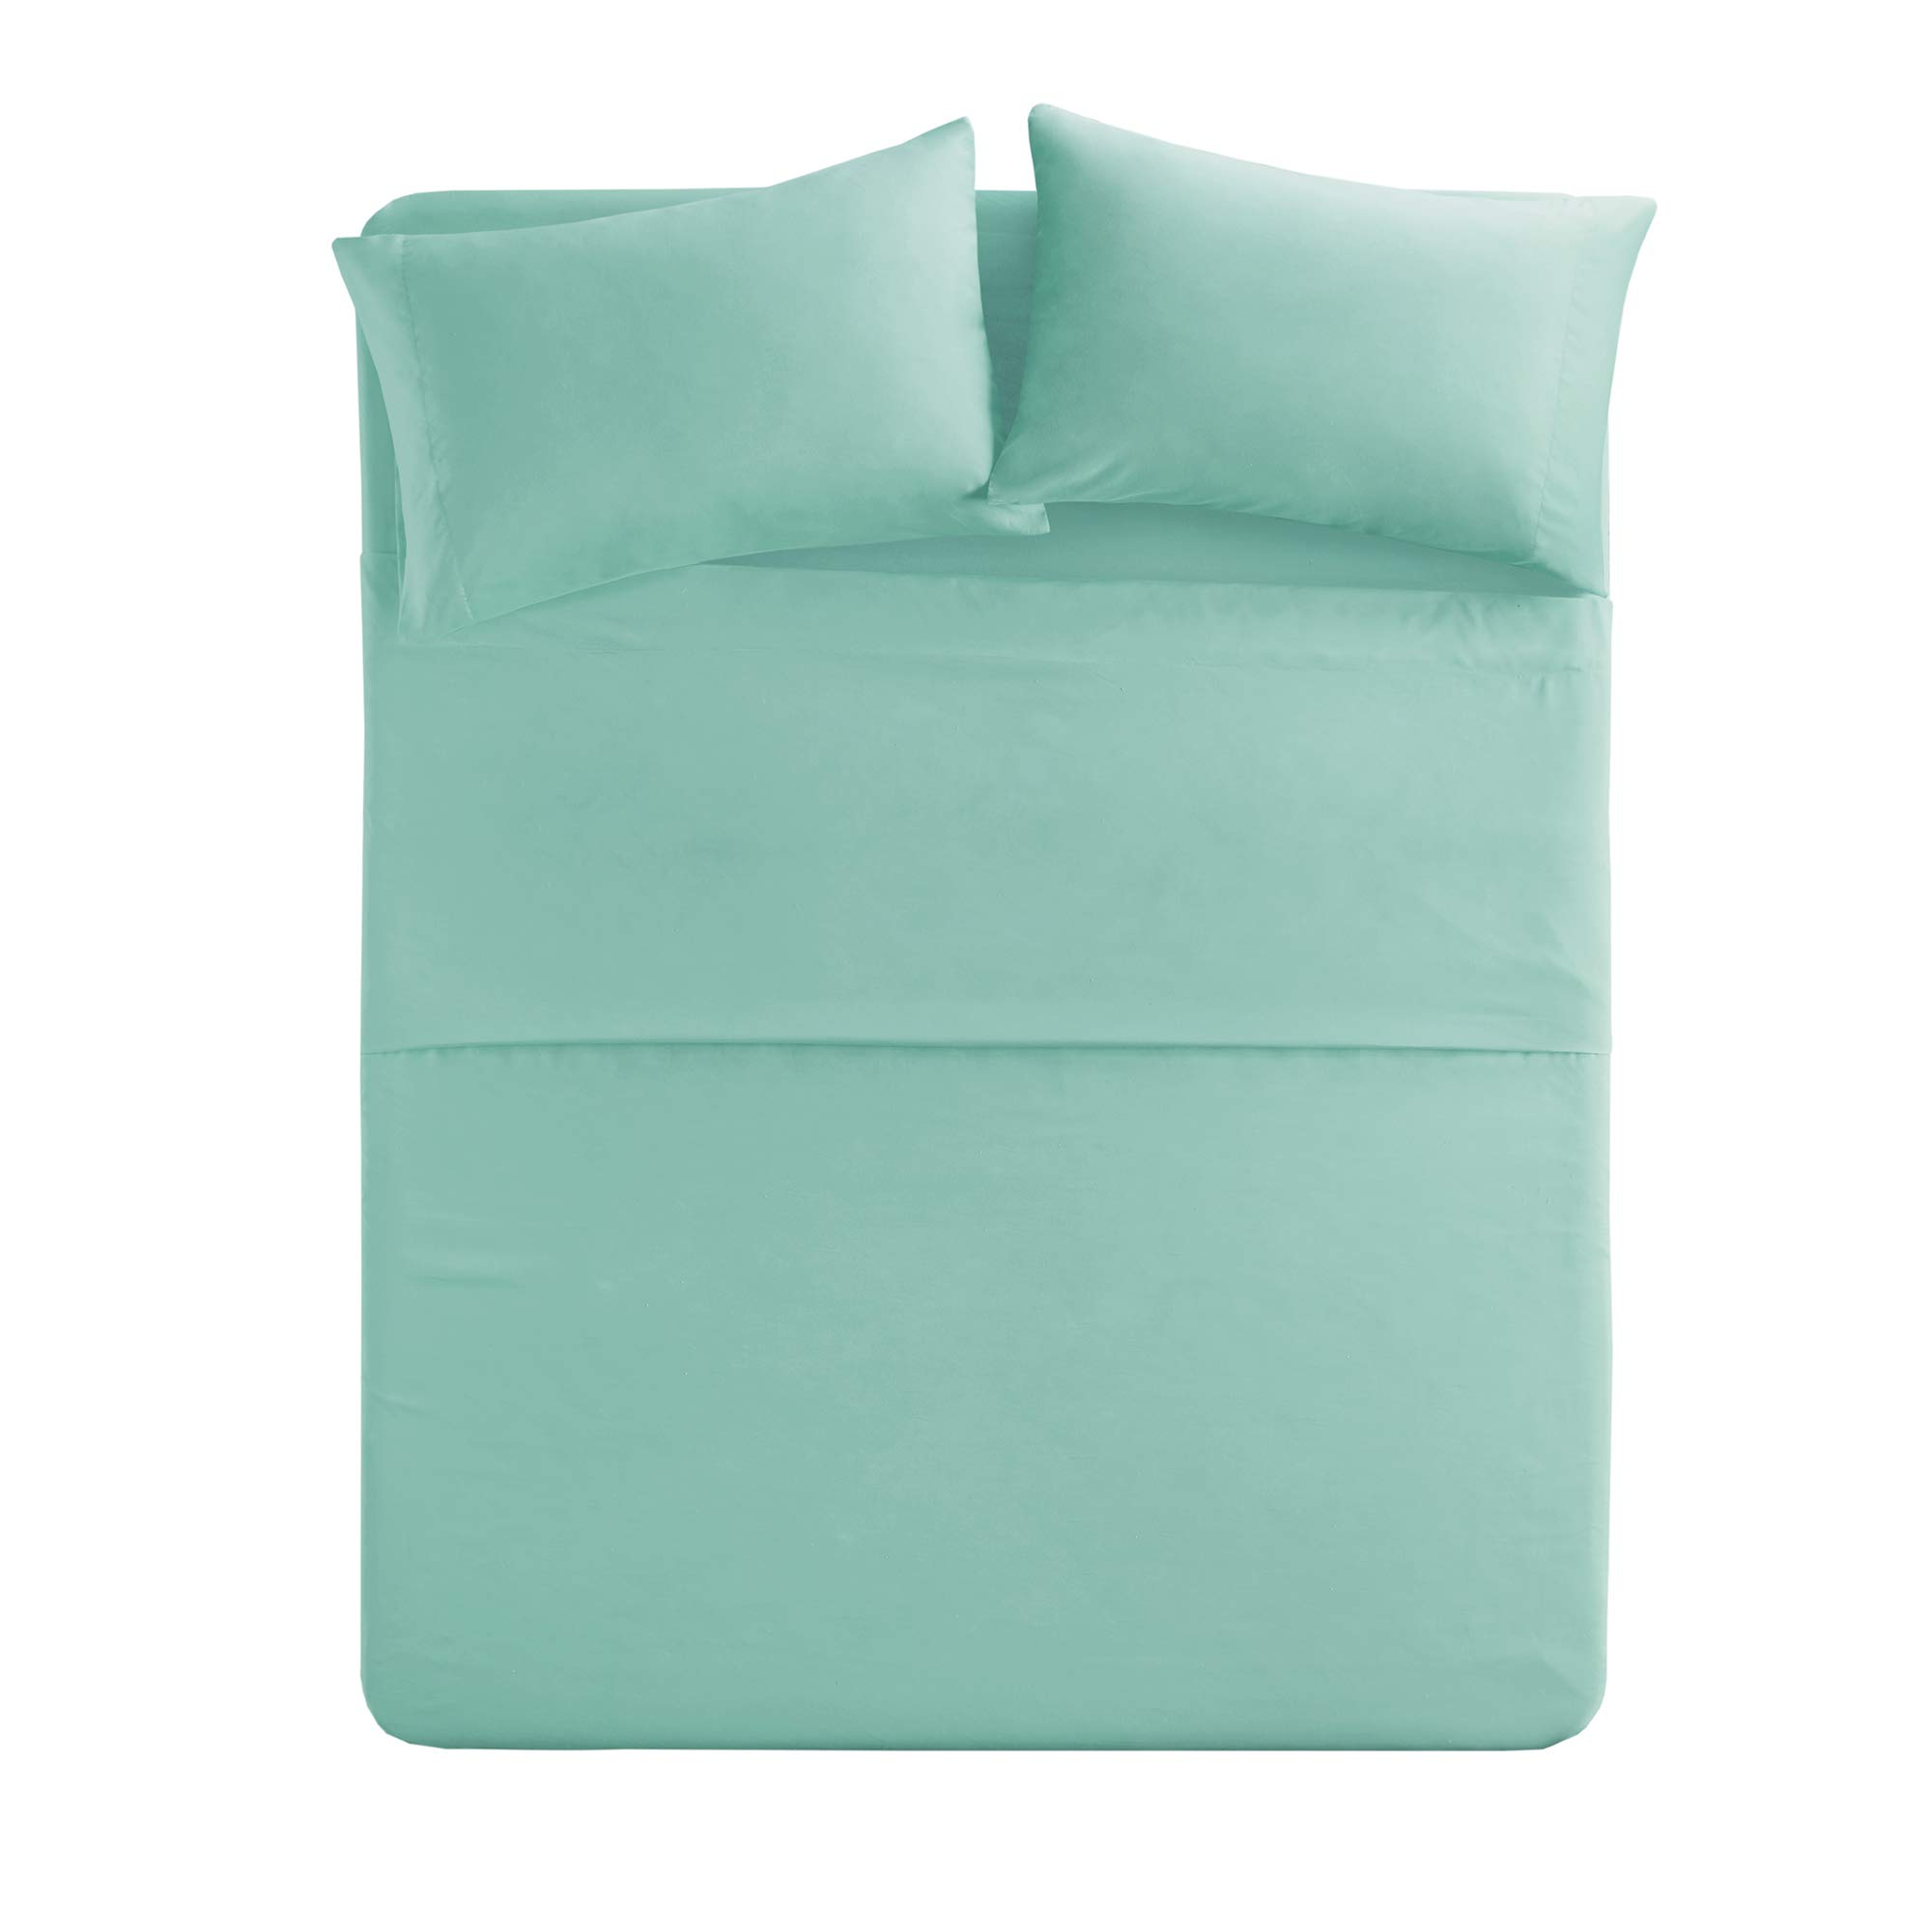 Comfort Spaces - Hypoallergenic Microfiber Sheet Set - 4 Piece - Twin Size- Wrinkle, Fade, Stain Resistant - Aqua Blue - Includes Flat Sheet, Fitted Sheet and 2 Pillow Cases